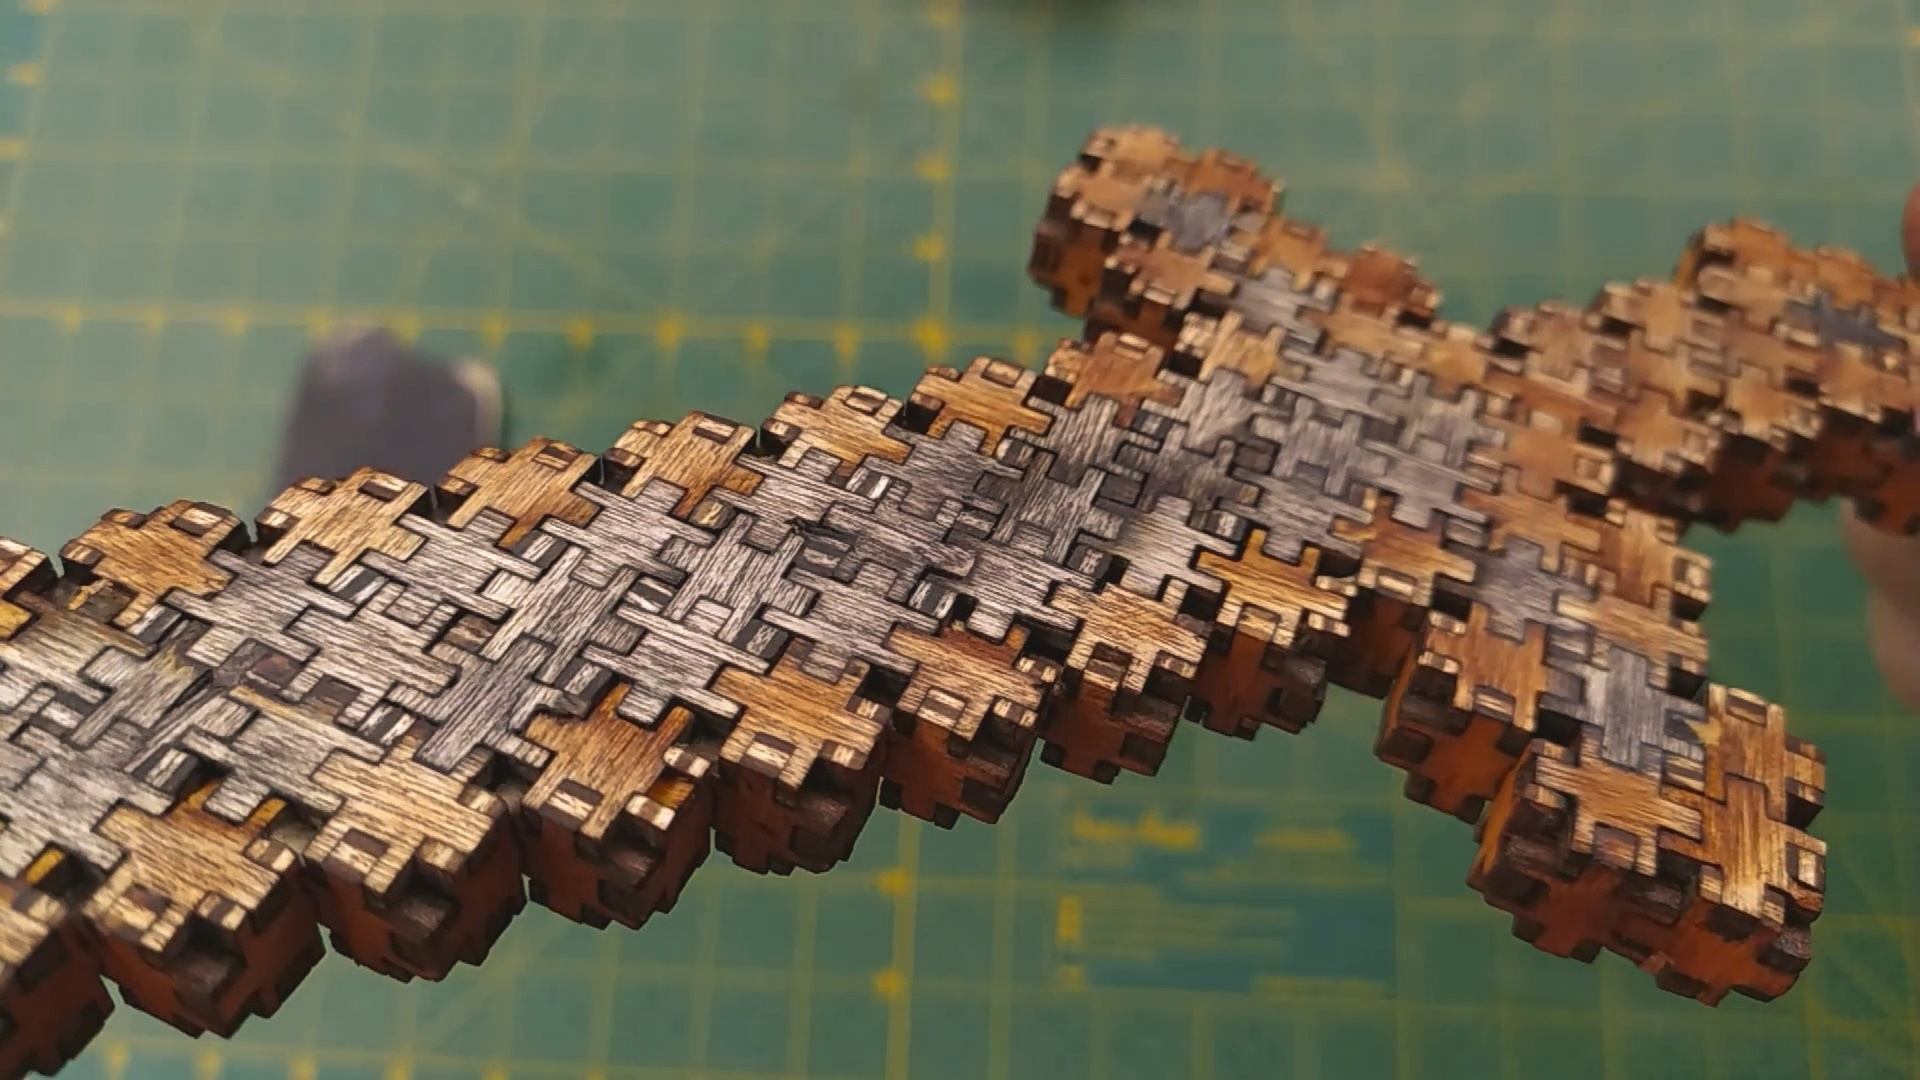 Laser Cut Minecraft Sword 3d Puzzle 3mm Plywood Piece Size 12x12mm DXF File